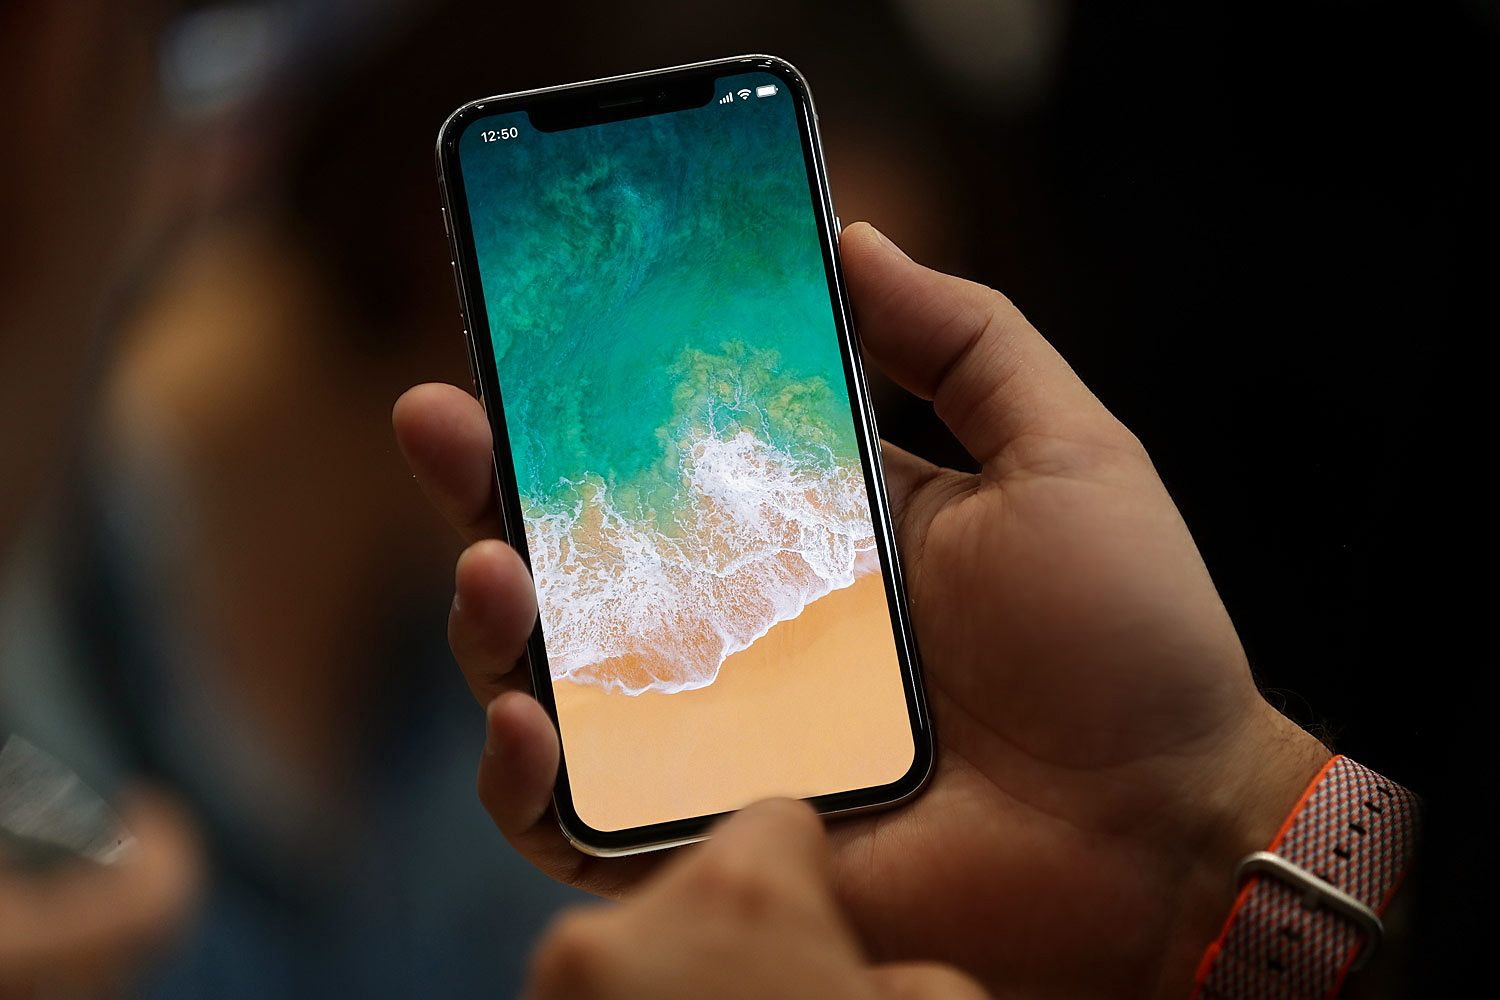 iPhone X with Status Bar in Hand Free Mockup (With images